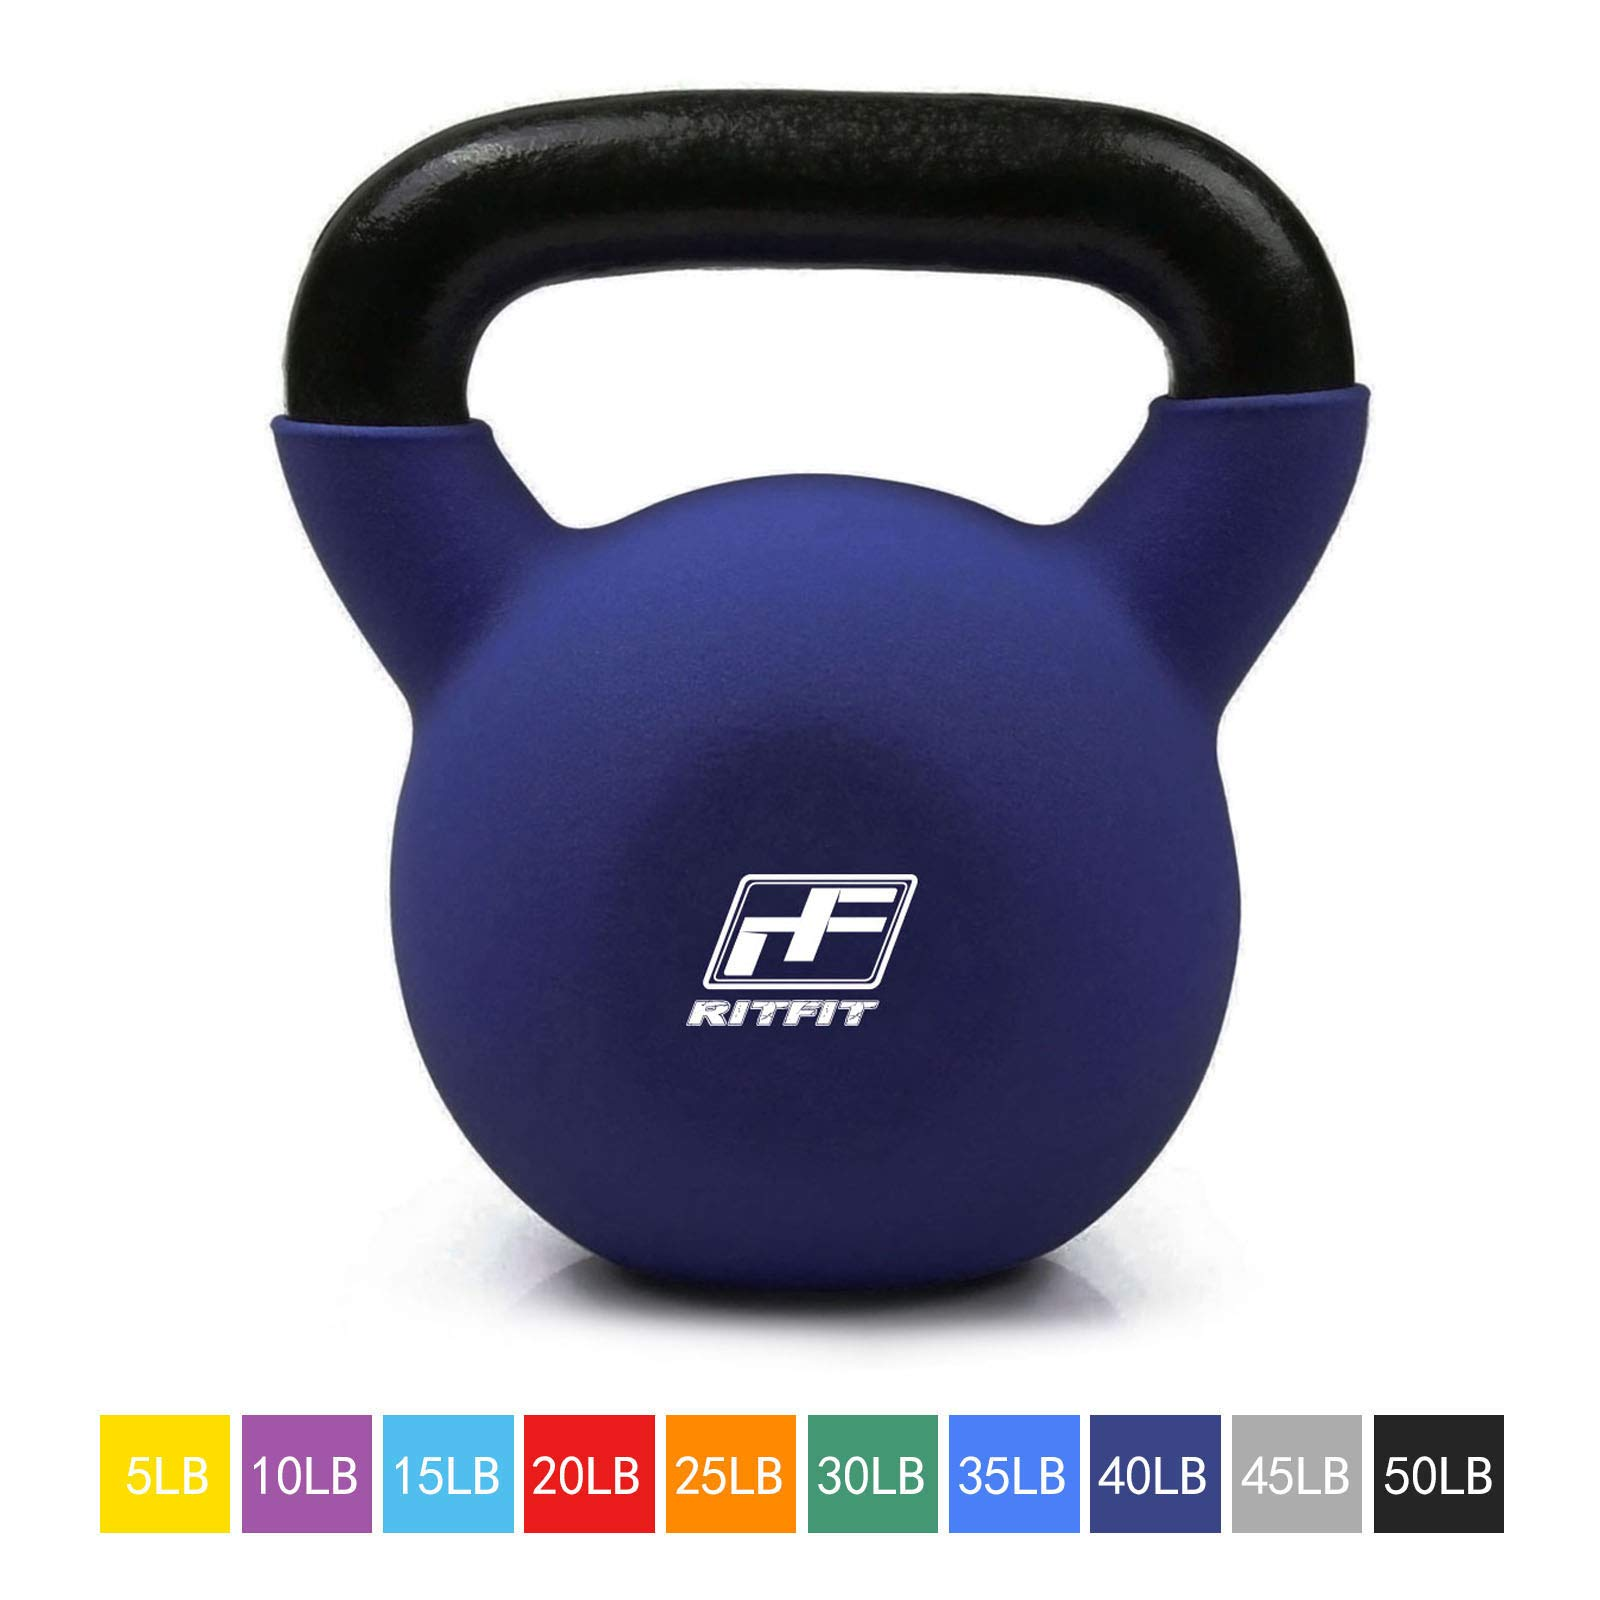 RitFit Neoprene Coated Solid Cast Iron Kettlebell - Great for Full Body Workout, Cross-Training, Weight Loss & Strength Training (5/10/15/20/25/30/35/40/45/50 LB) (40LB(Cyan))